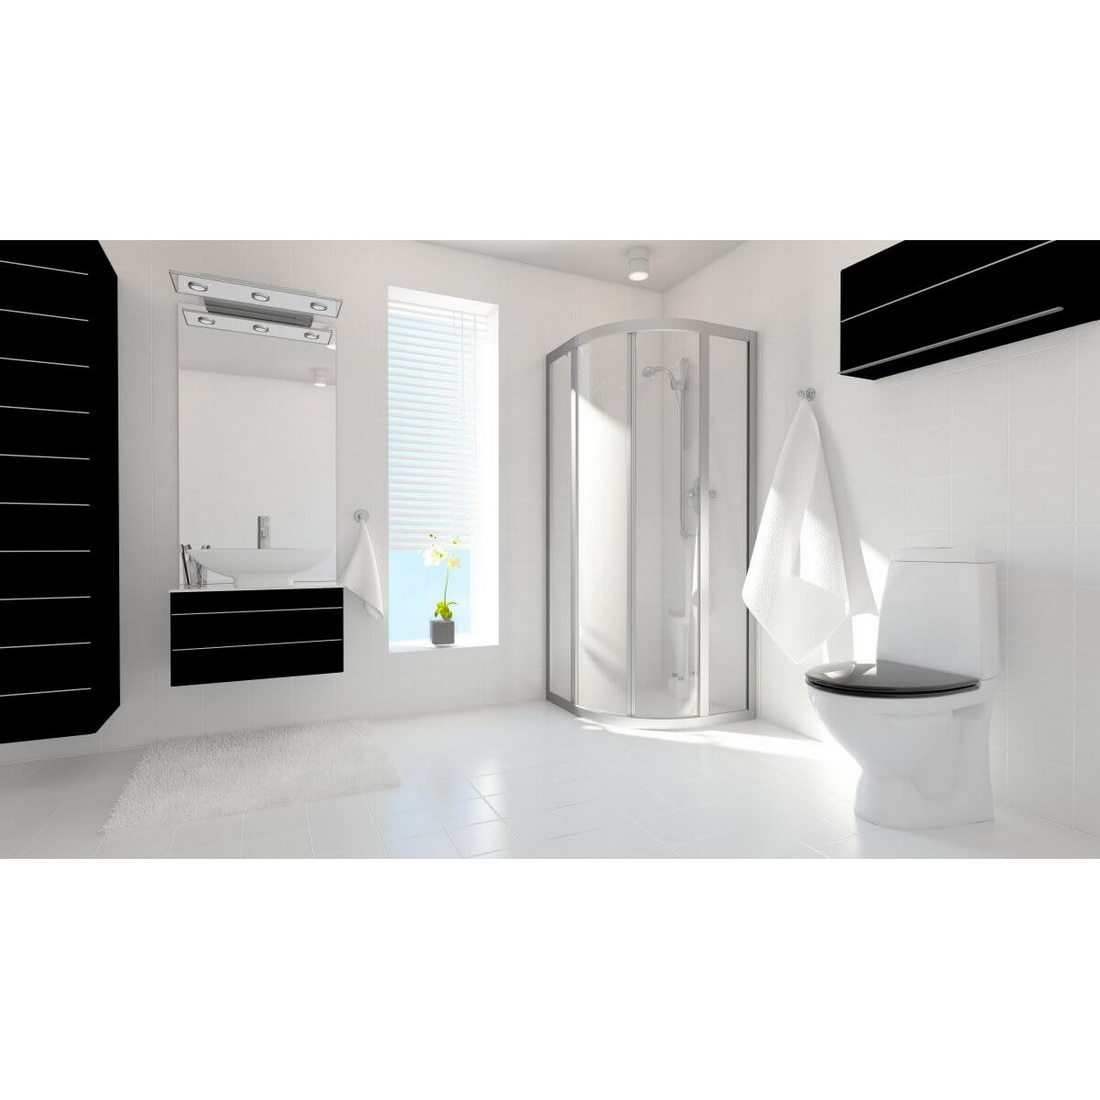 Showerline 2400 x 900 x 4.75mm Acp Wet Wall Lining White